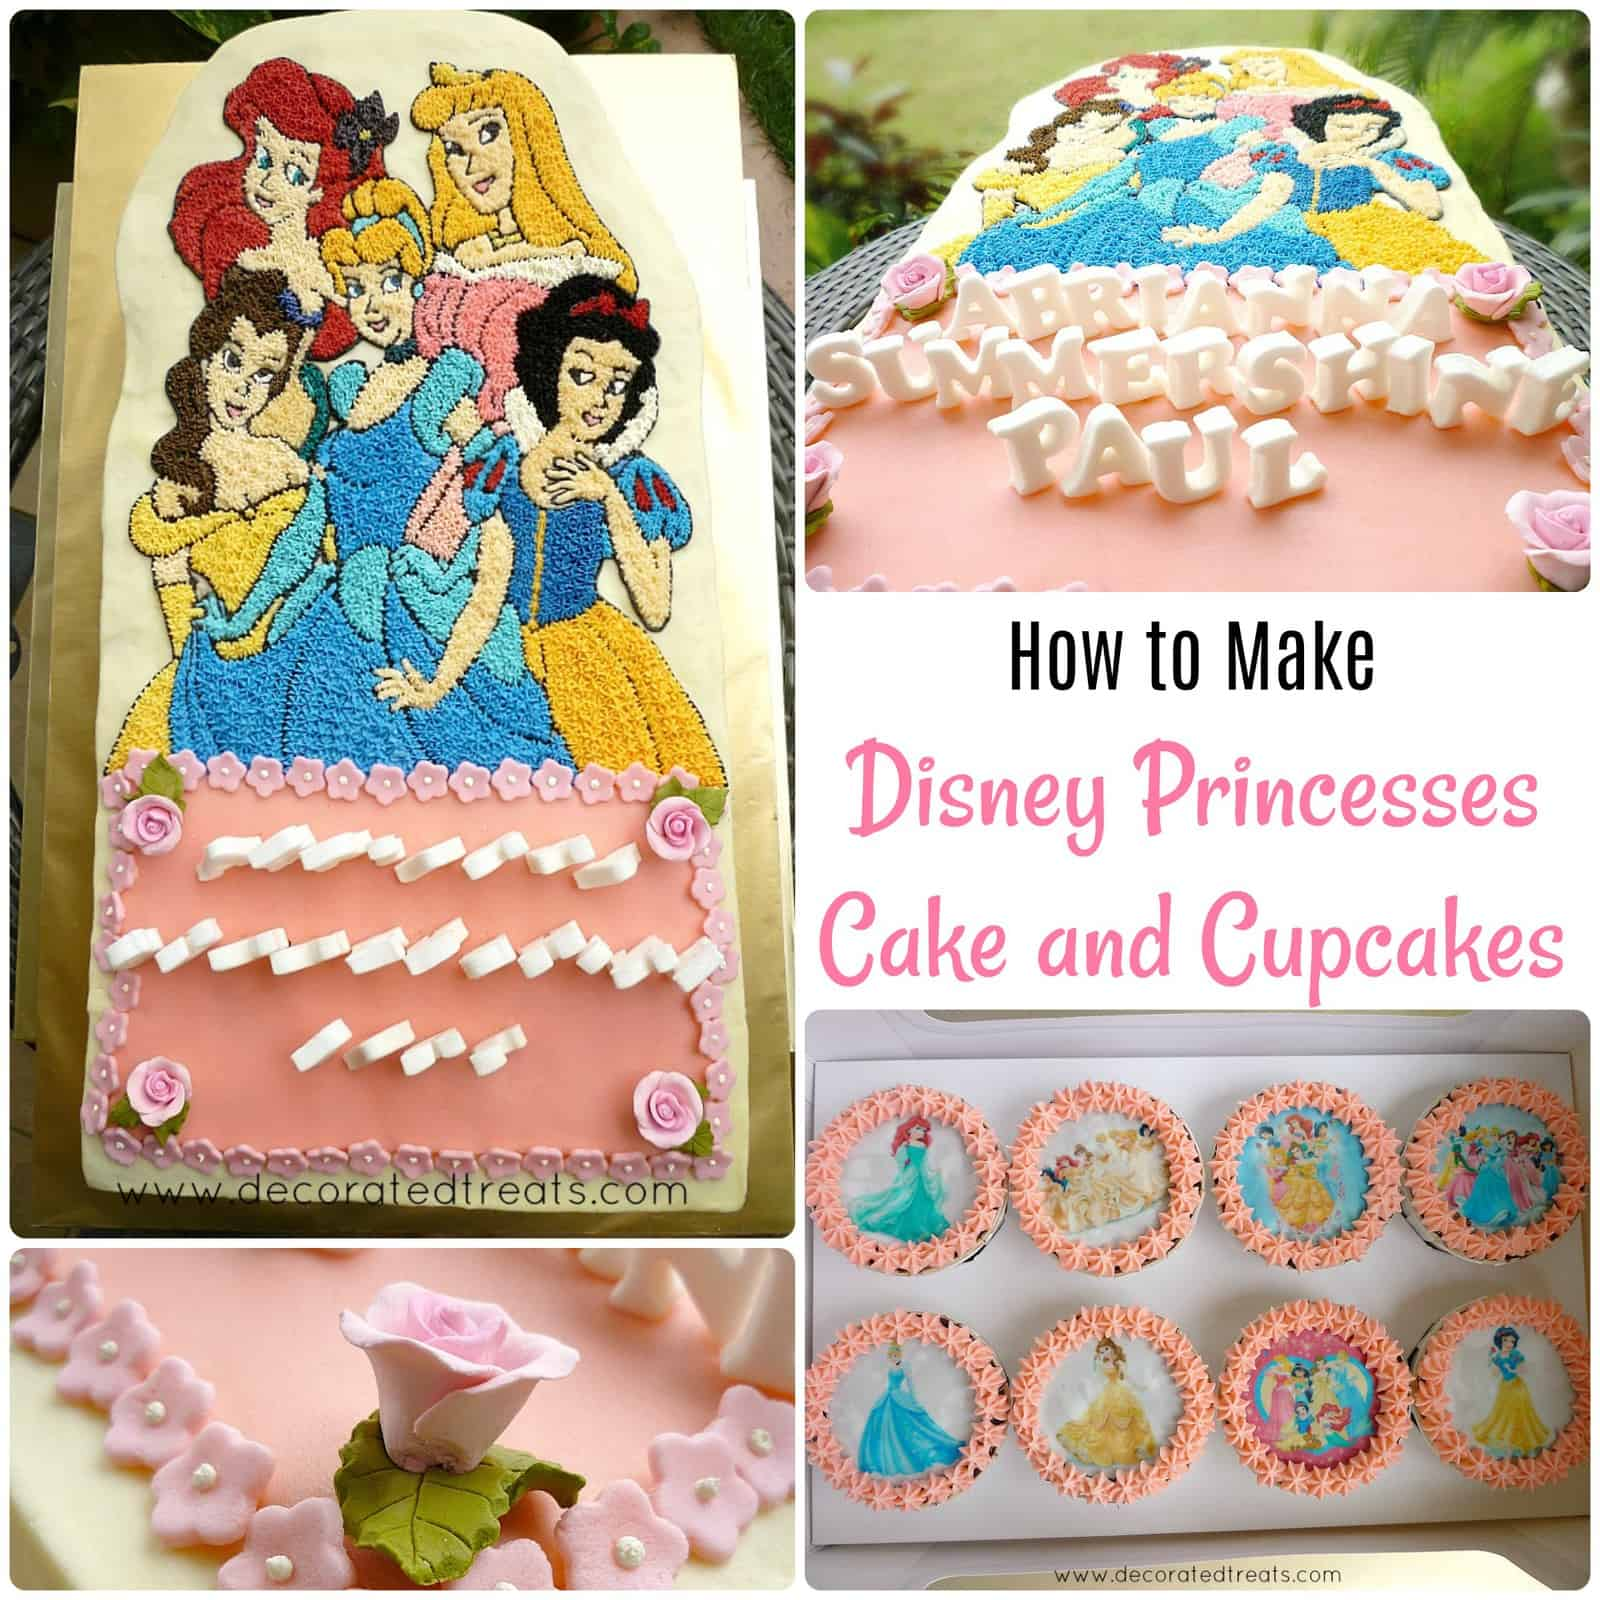 Poster for a cake decorated with Disney Princesses images and a set of matching cupcakes